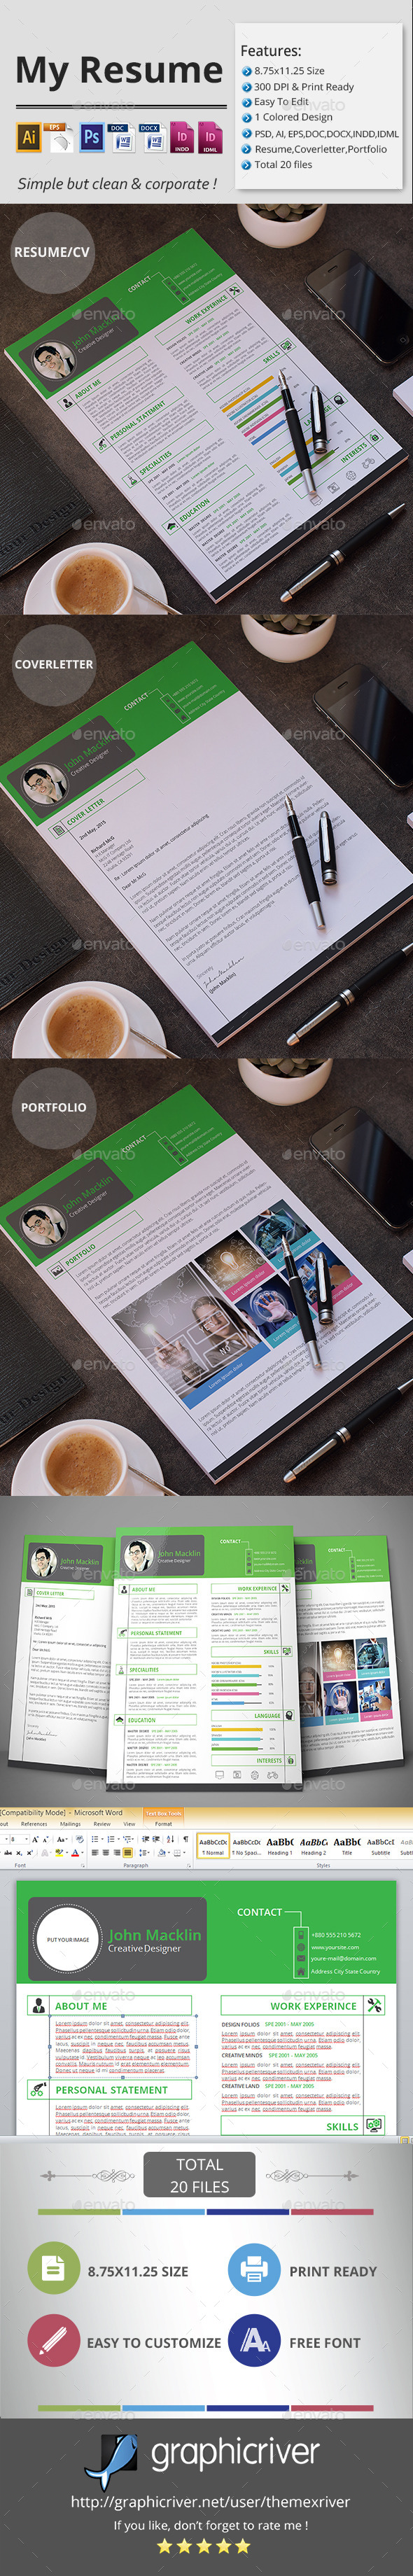 GraphicRiver My Resume CV 11955441